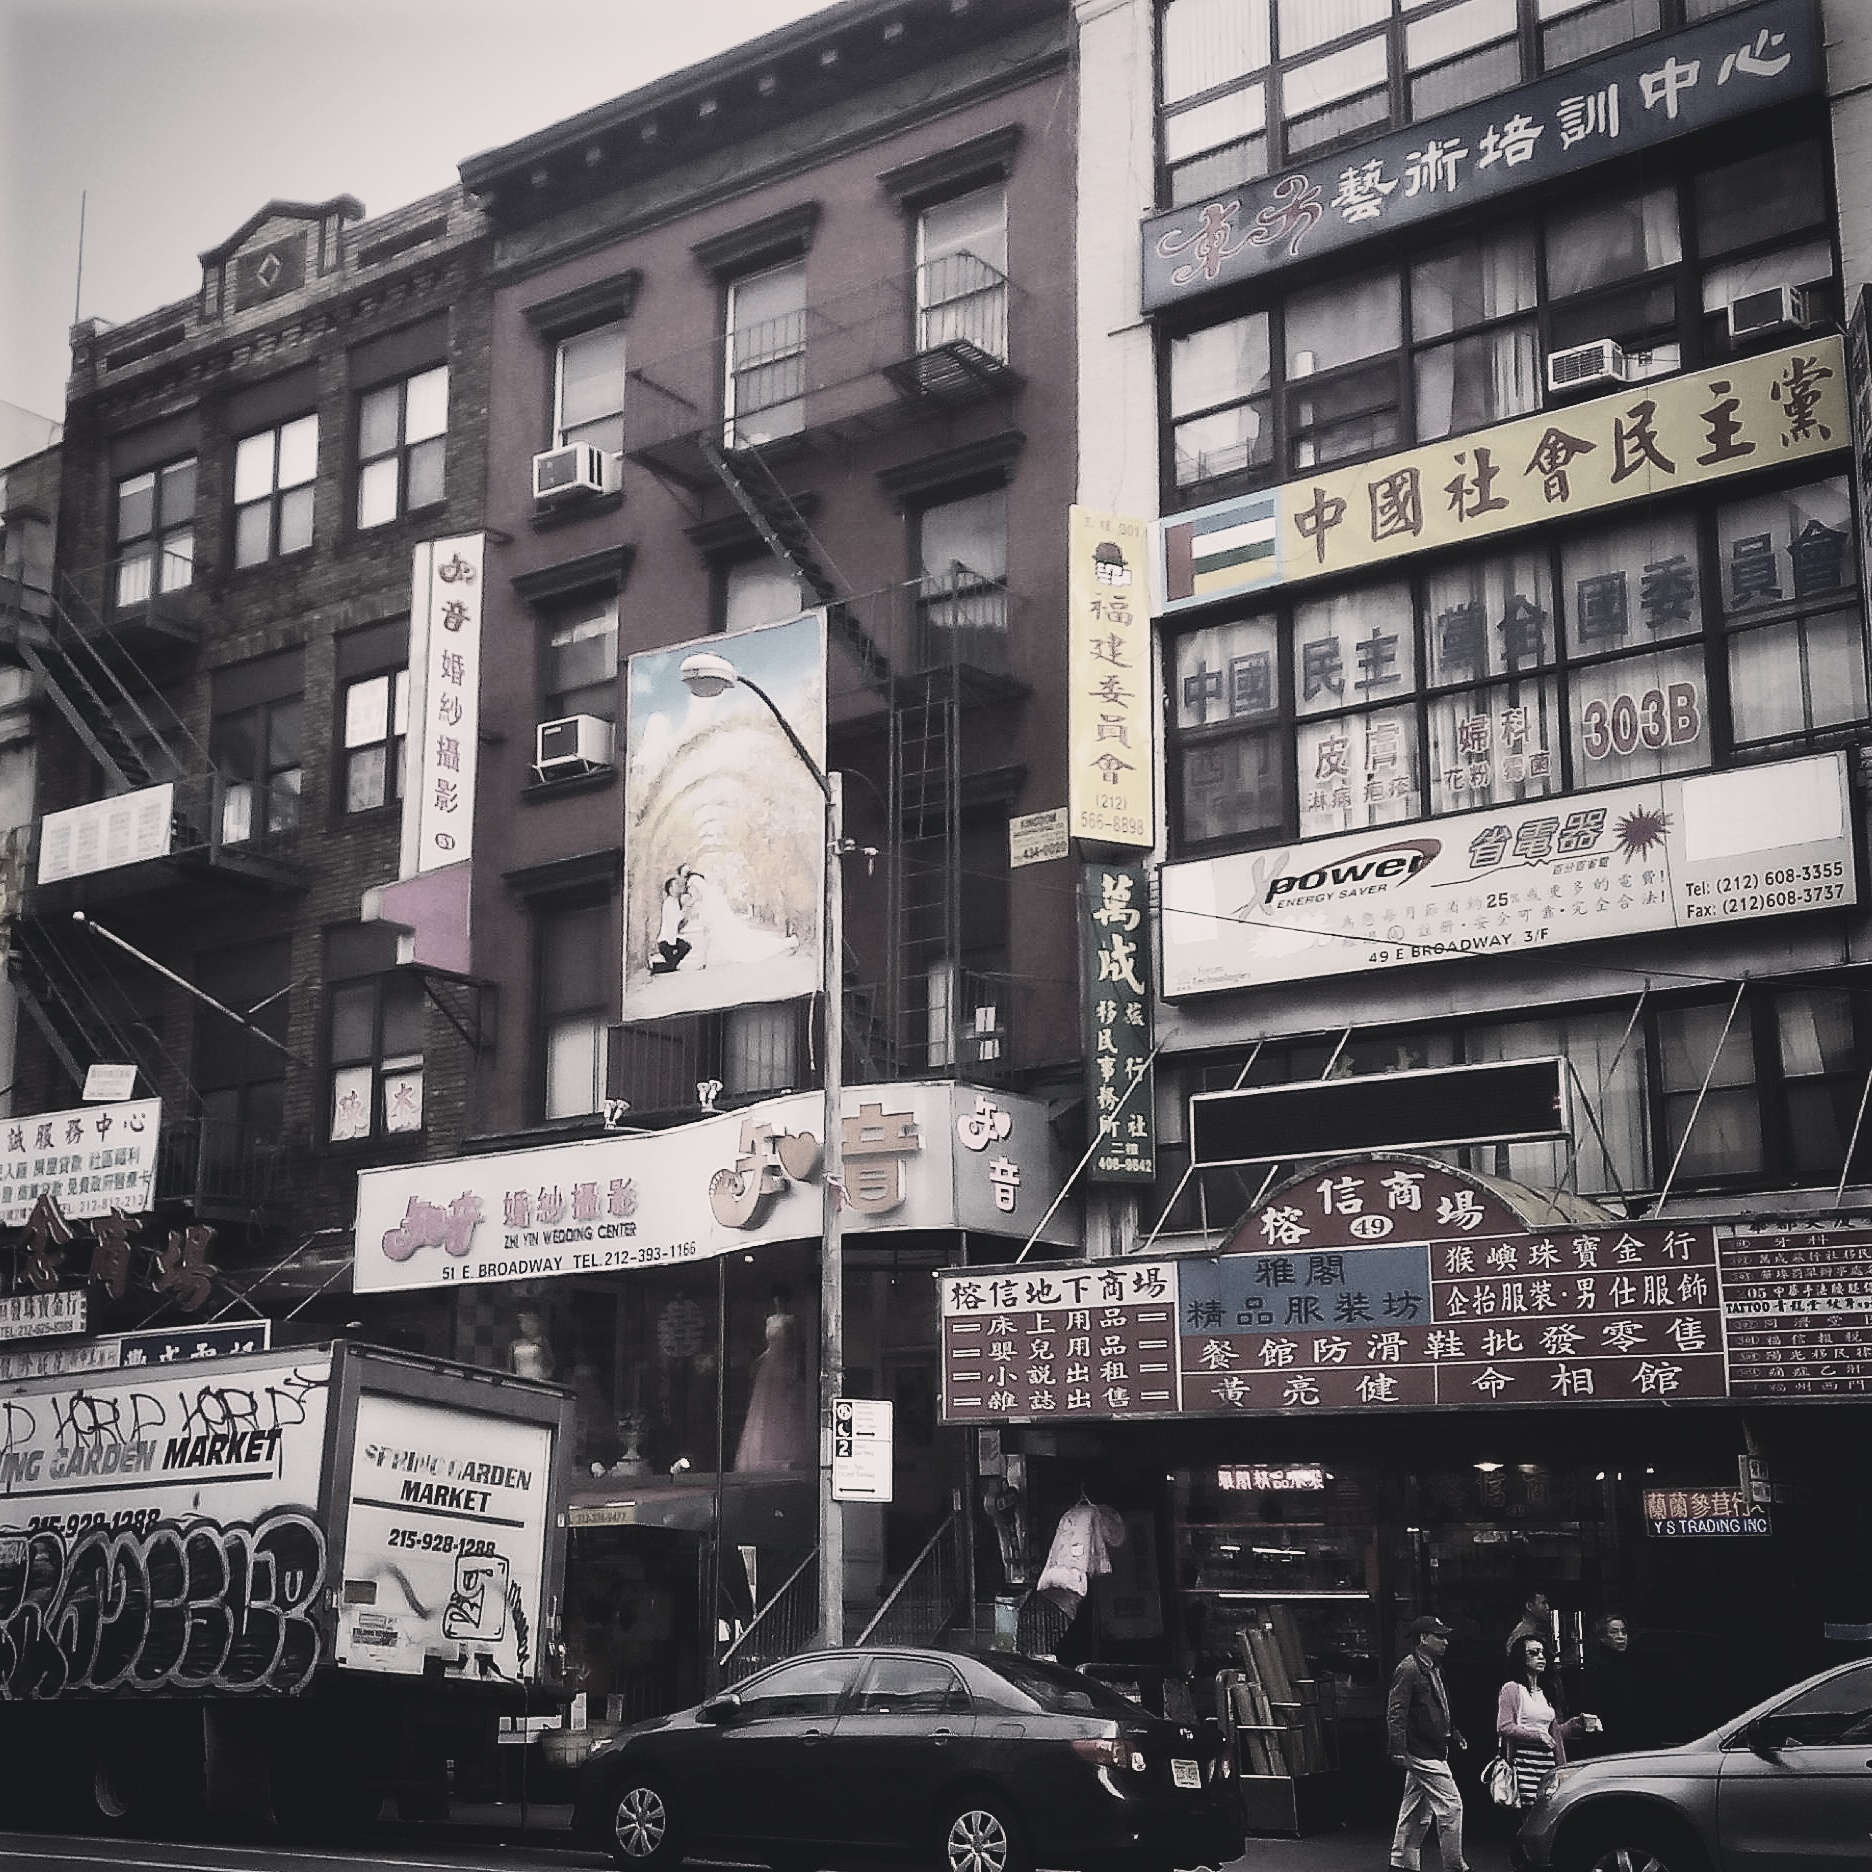 East Broadway. Chinatown.